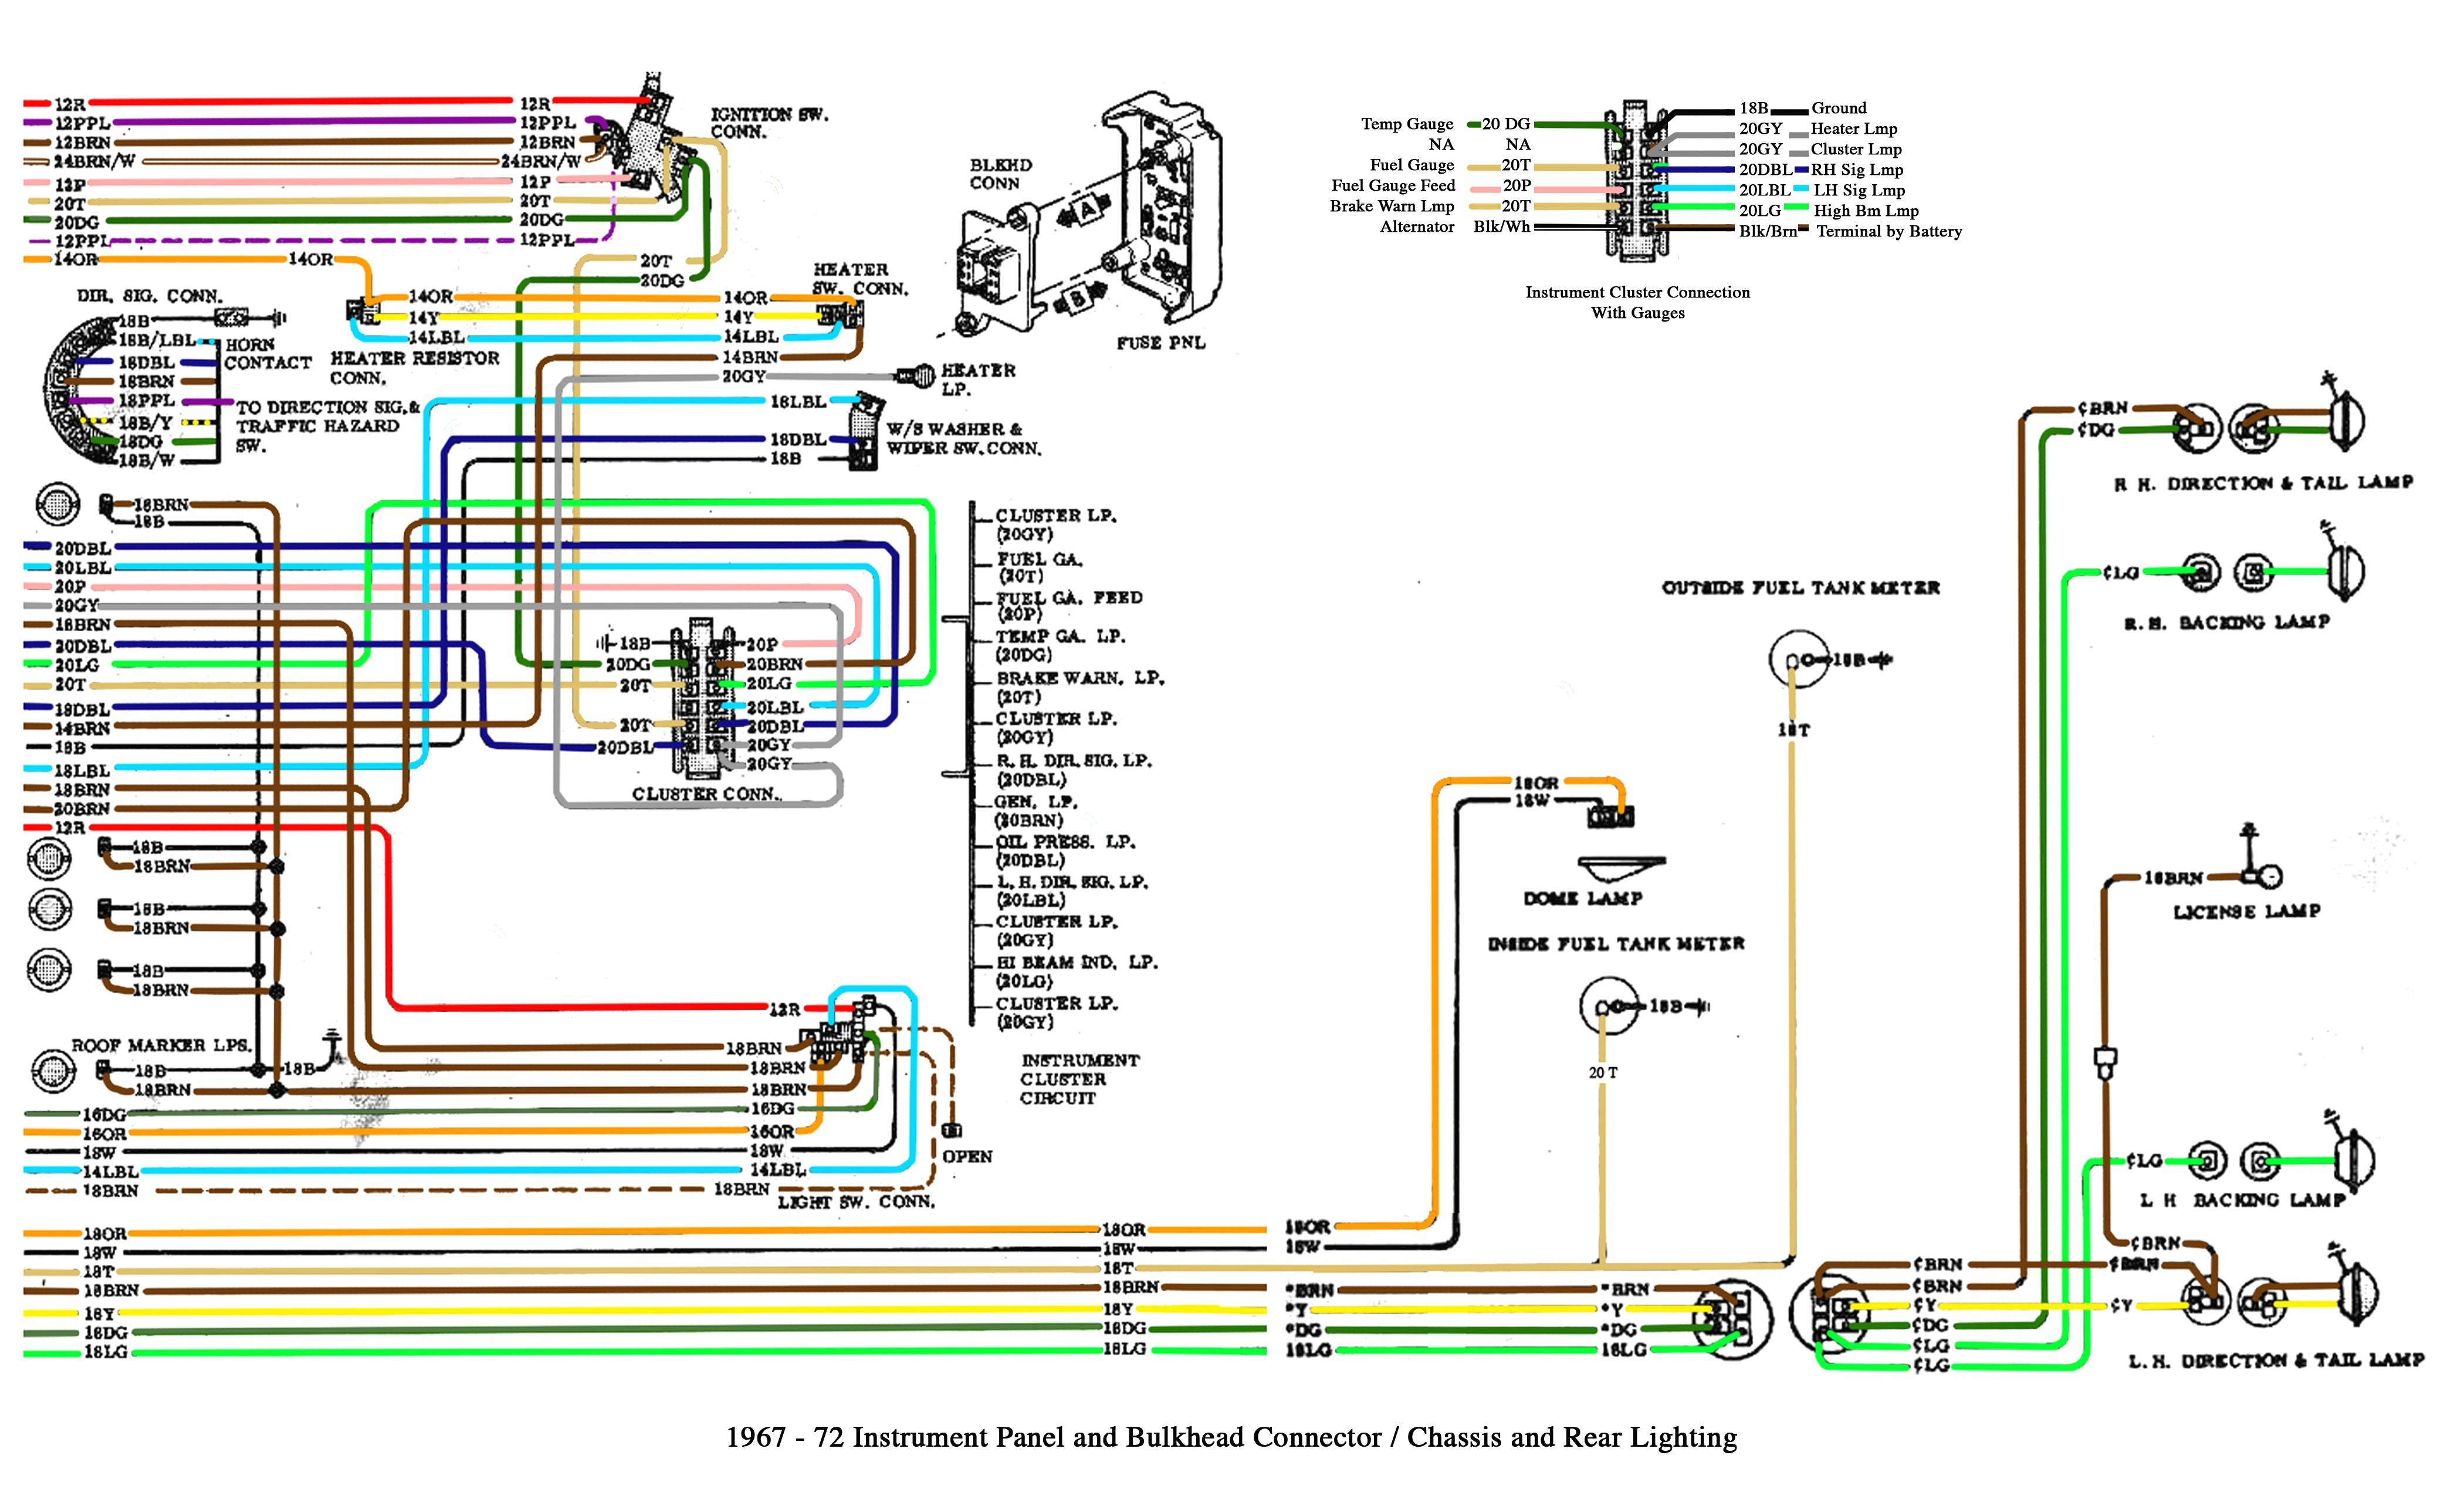 Gm Trailer Wiring Color Code | Wiring Library - Trailer Wiring Diagram Color Code